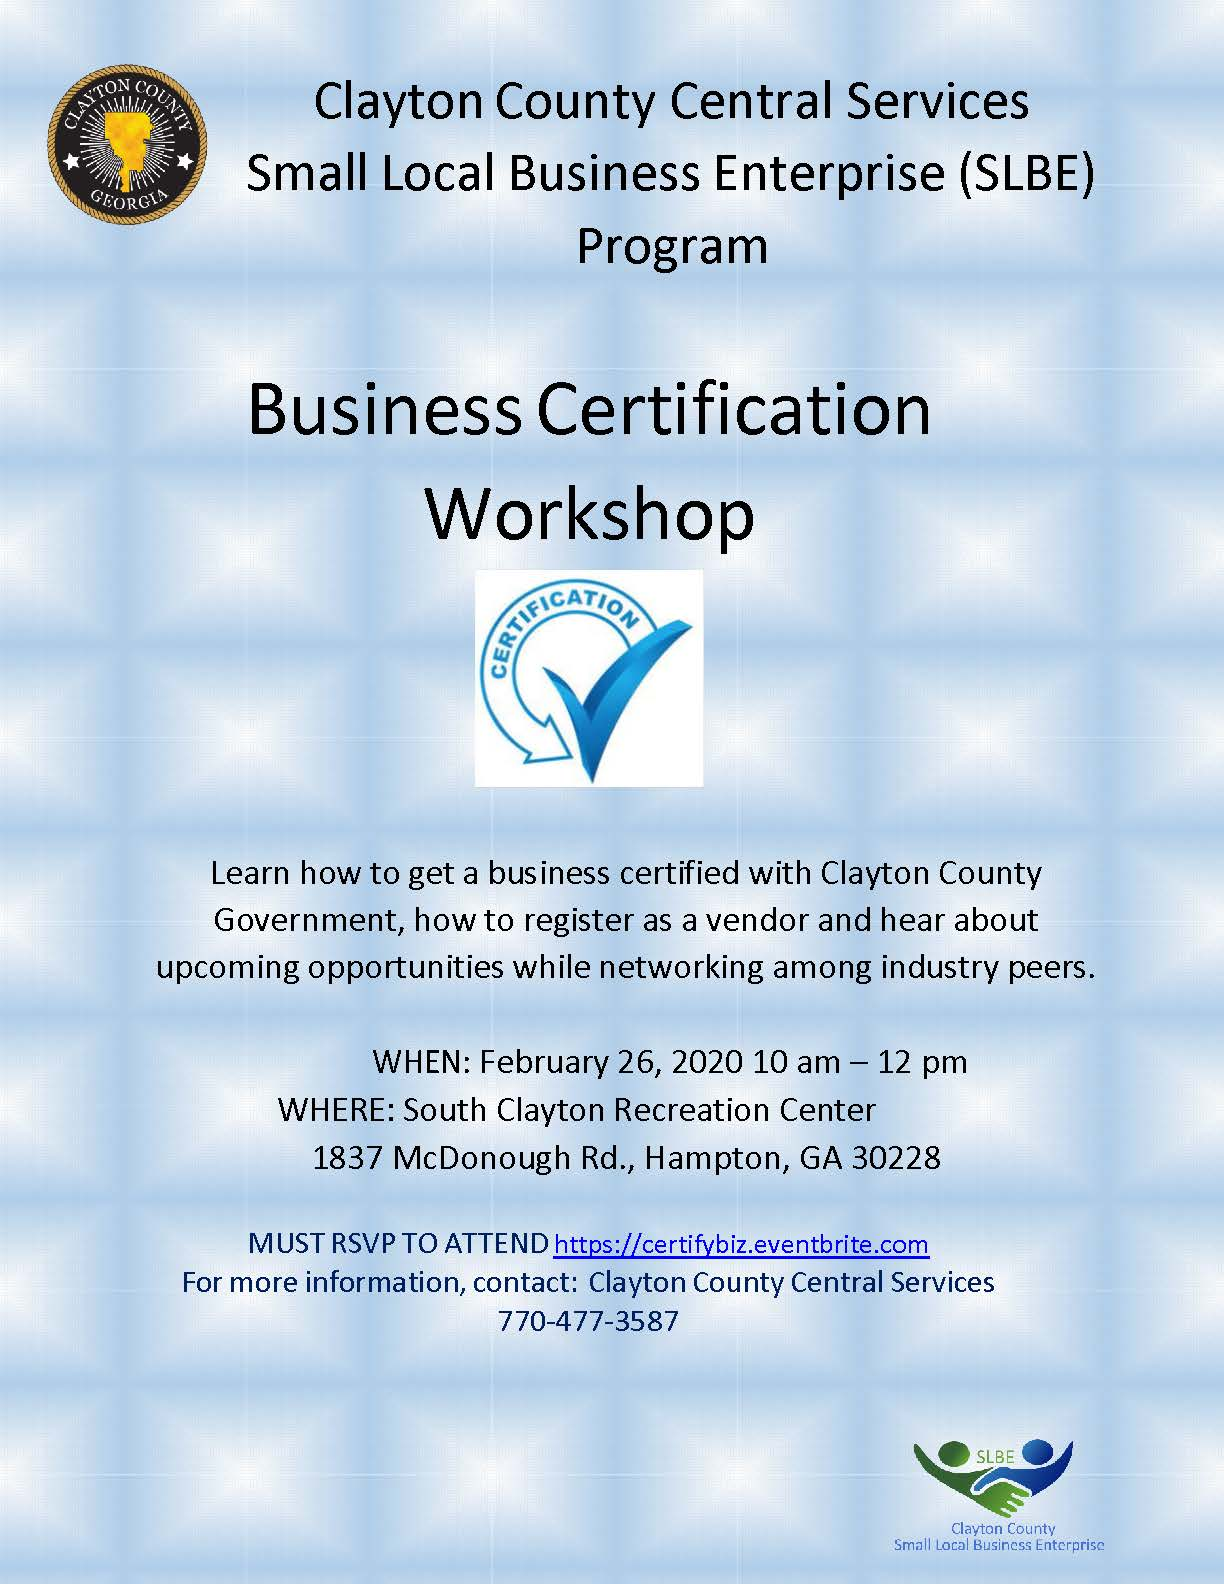 Business-Certification-Flyer-2.26.20